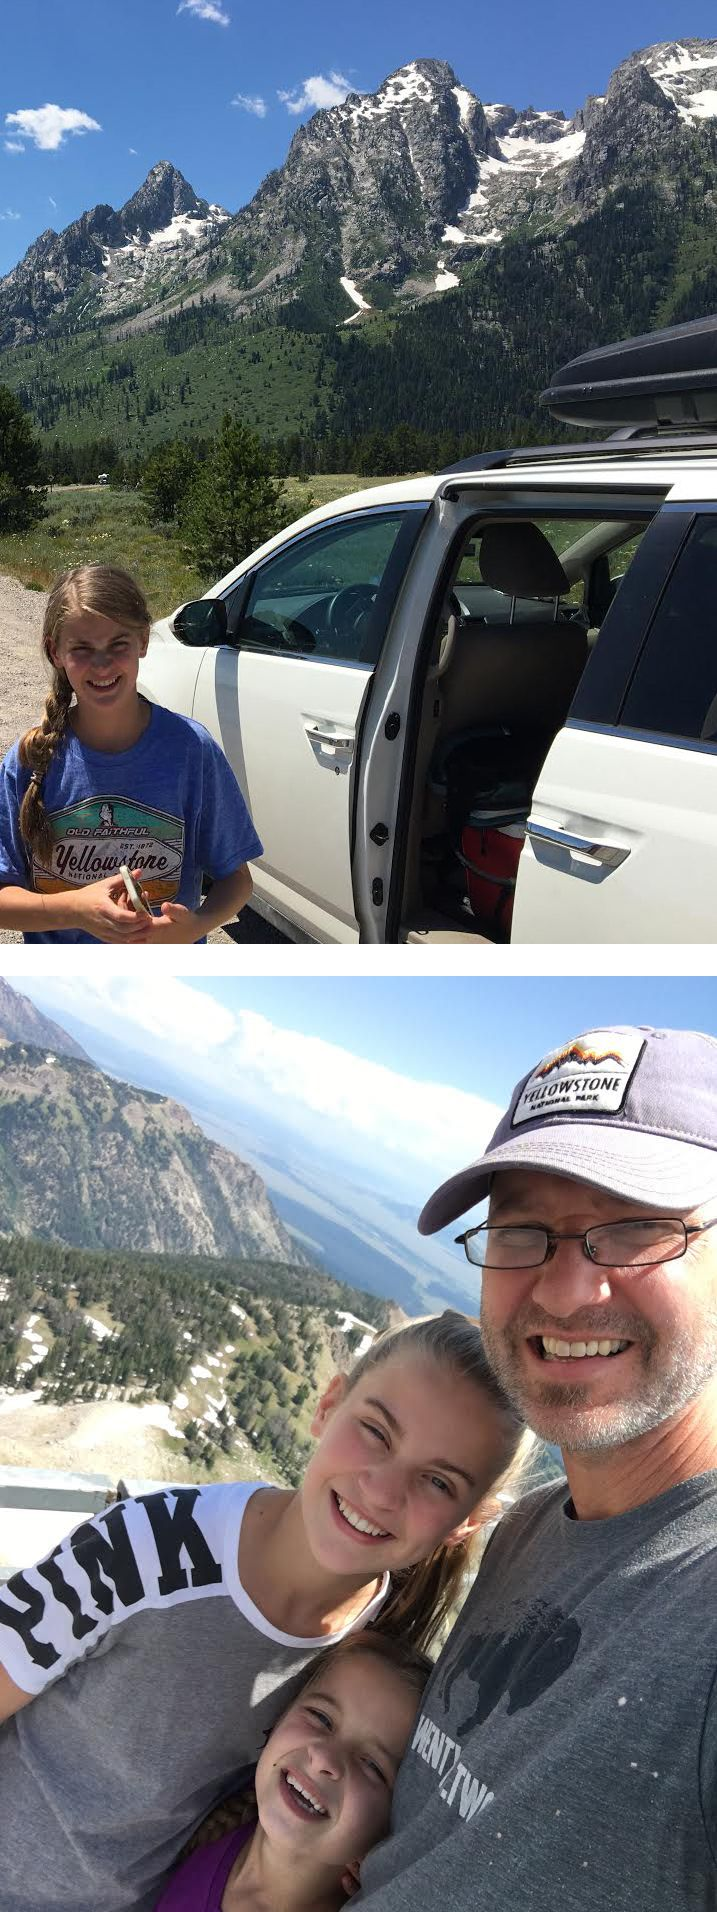 "Check out where our good friends, the McCorry's took their new Honda Odyssey! He wrote to us... ""The Honda is treating us great!! 7,000 miles and counting! Grand Teton National Park!"" Thank you for sending us the great photos!"